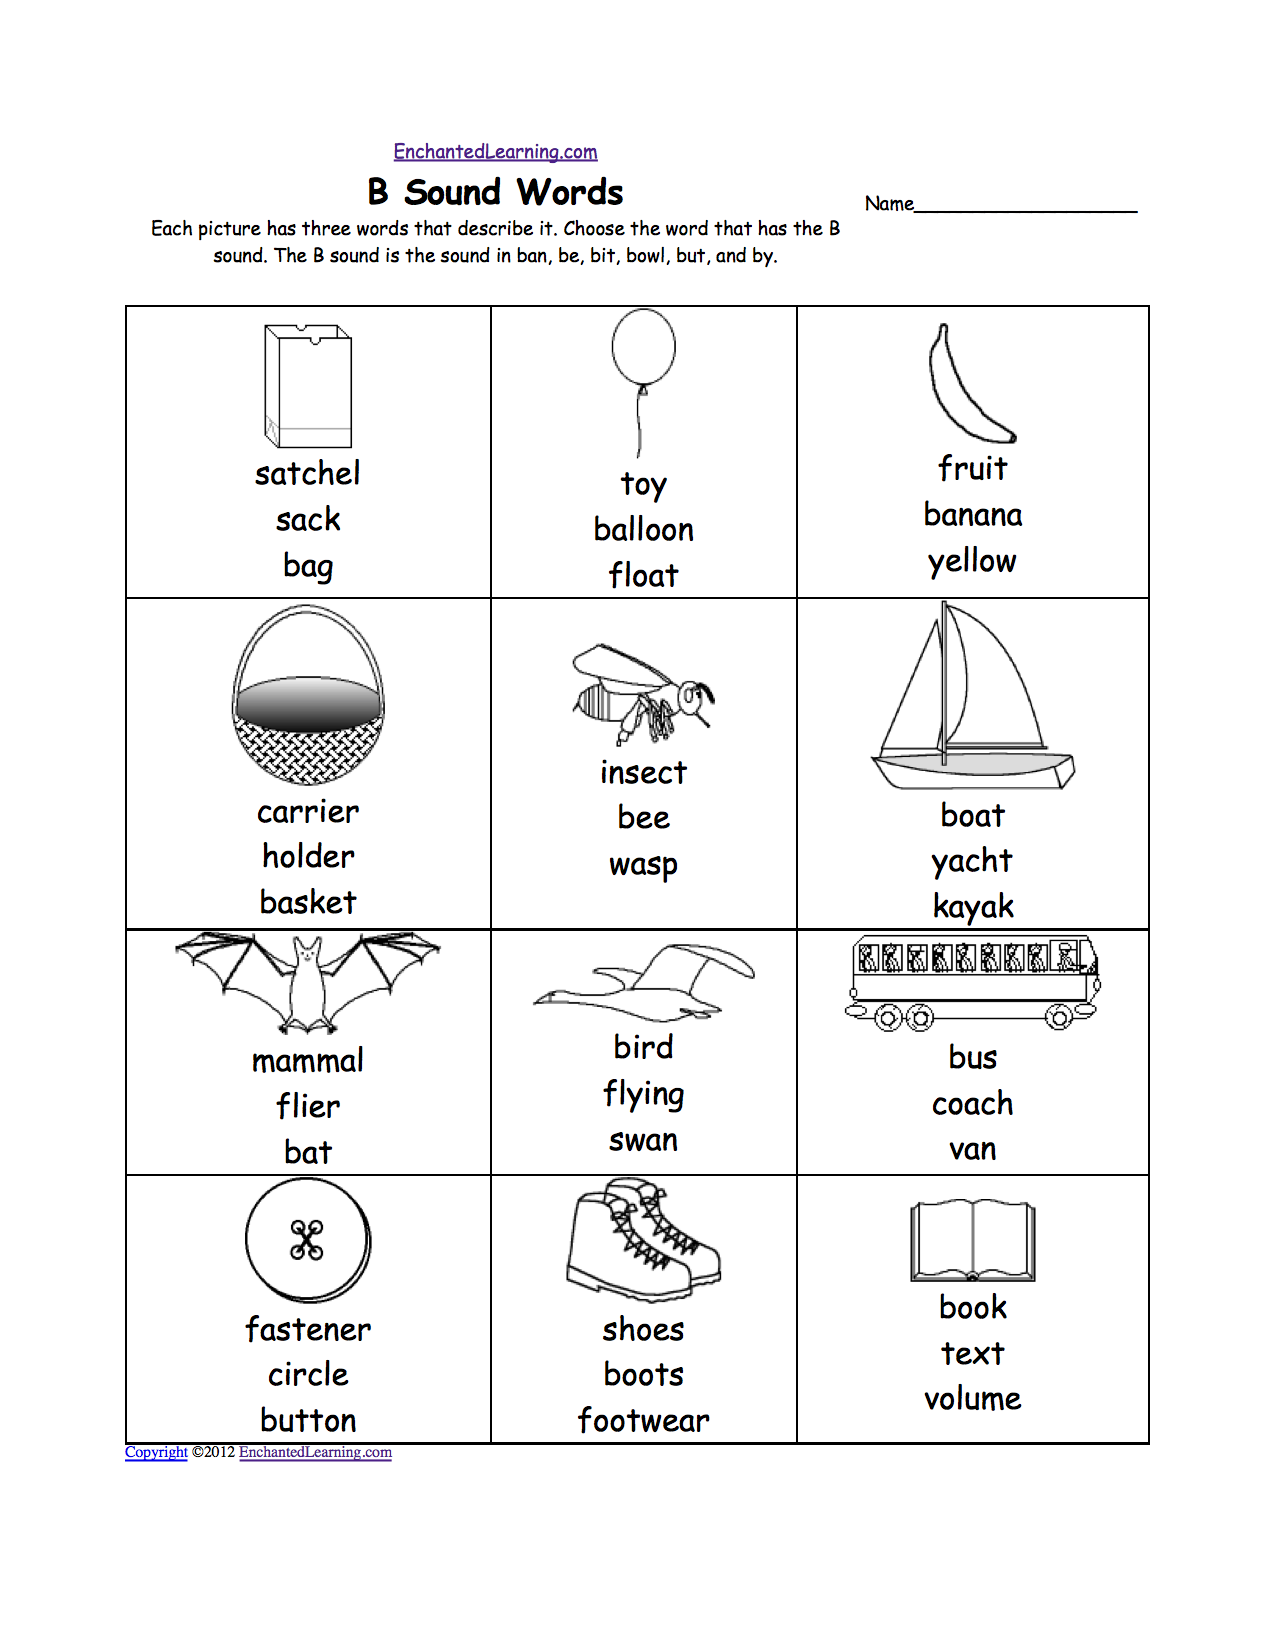 Aldiablosus  Marvellous Phonics Worksheets Multiple Choice Worksheets To Print  With Gorgeous Quotbquot Sound Phonics Worksheet Multiple Choice Each Picture Has Three Words That Describe It Choose The Word That Has A Quotbquot Sound The Quotbquot Sound Is The Sound  With Archaic Angles Geometry Worksheet Also Preposition Of Place Worksheet In Addition Th Grade Math Equations Worksheets And Coloring Fractions Worksheet As Well As Civil War Worksheets For Kids Additionally States And Capital Worksheets From Enchantedlearningcom With Aldiablosus  Gorgeous Phonics Worksheets Multiple Choice Worksheets To Print  With Archaic Quotbquot Sound Phonics Worksheet Multiple Choice Each Picture Has Three Words That Describe It Choose The Word That Has A Quotbquot Sound The Quotbquot Sound Is The Sound  And Marvellous Angles Geometry Worksheet Also Preposition Of Place Worksheet In Addition Th Grade Math Equations Worksheets From Enchantedlearningcom